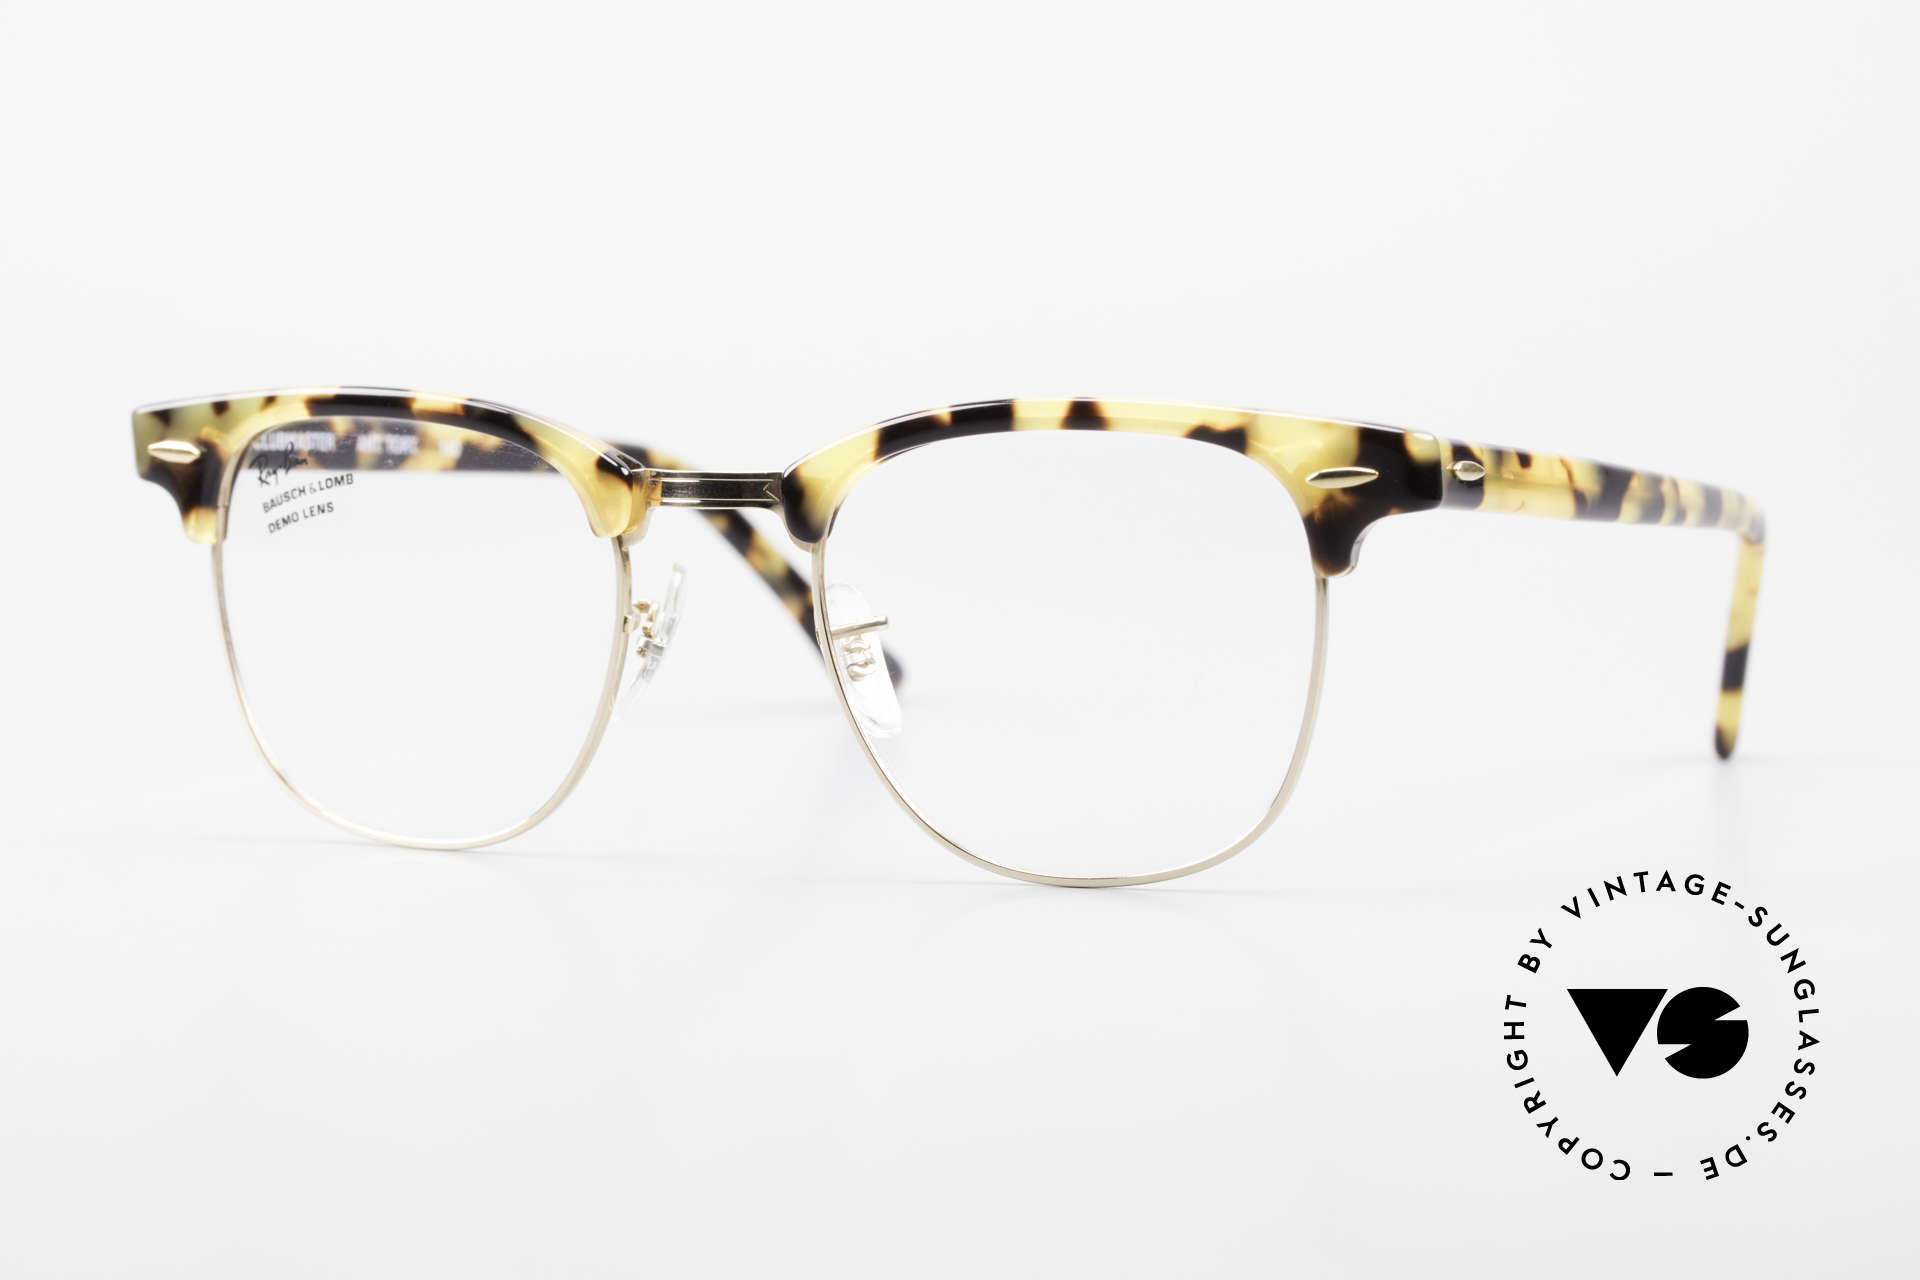 Ray Ban Clubmaster Limited Edition Frame USA B&L, OLD original 90's eyeglasses by RAY-BAN, USA, Made for Men and Women